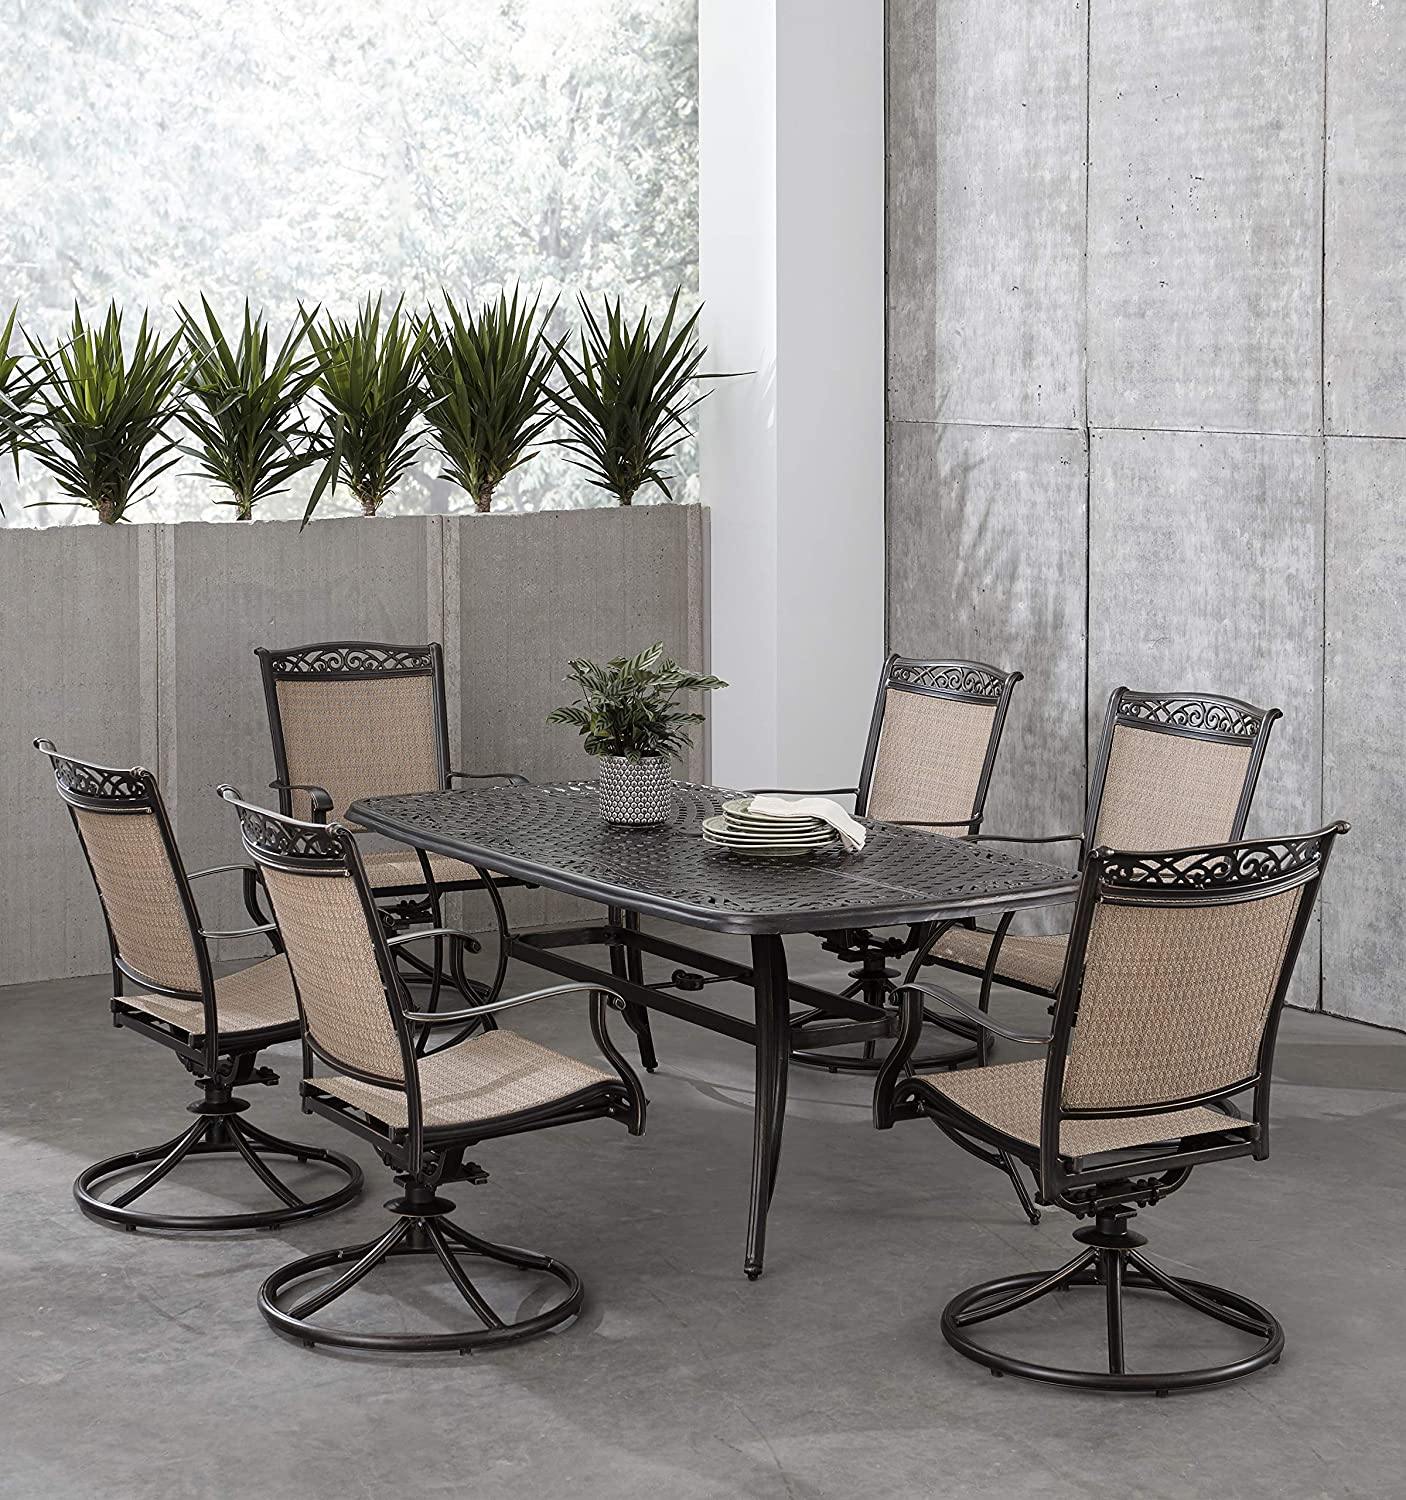 Hanover Fontana 7-Piece Dining Set with 6 Sling Swivel Rockers and a 38-in. x 72-in. Cast-Top Table, FNTDN7PCSWC Outdoor Furniture, Tan